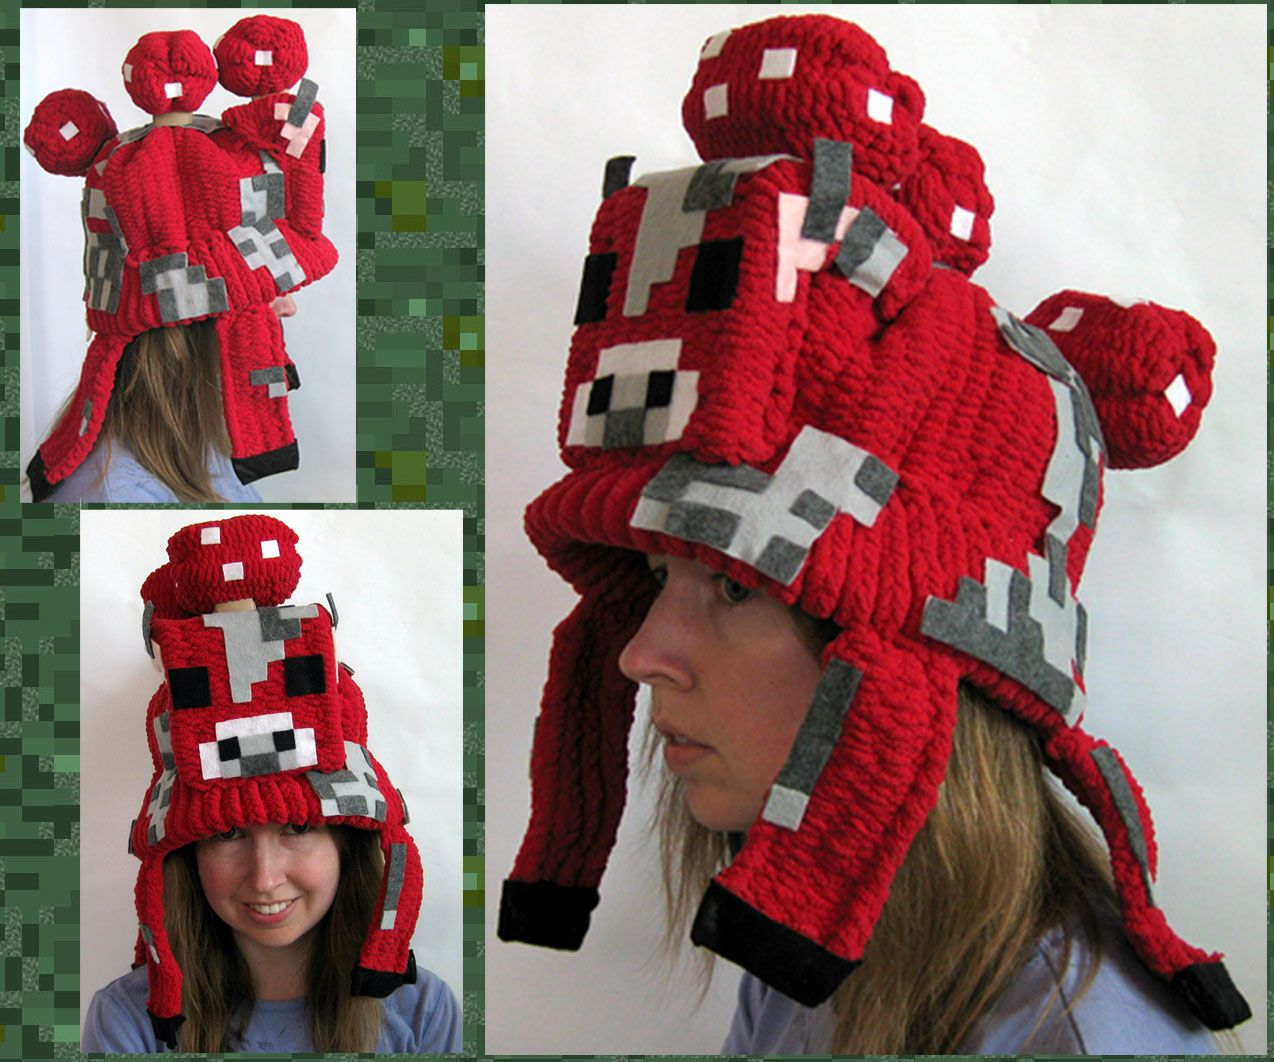 The Mooshroom Hat